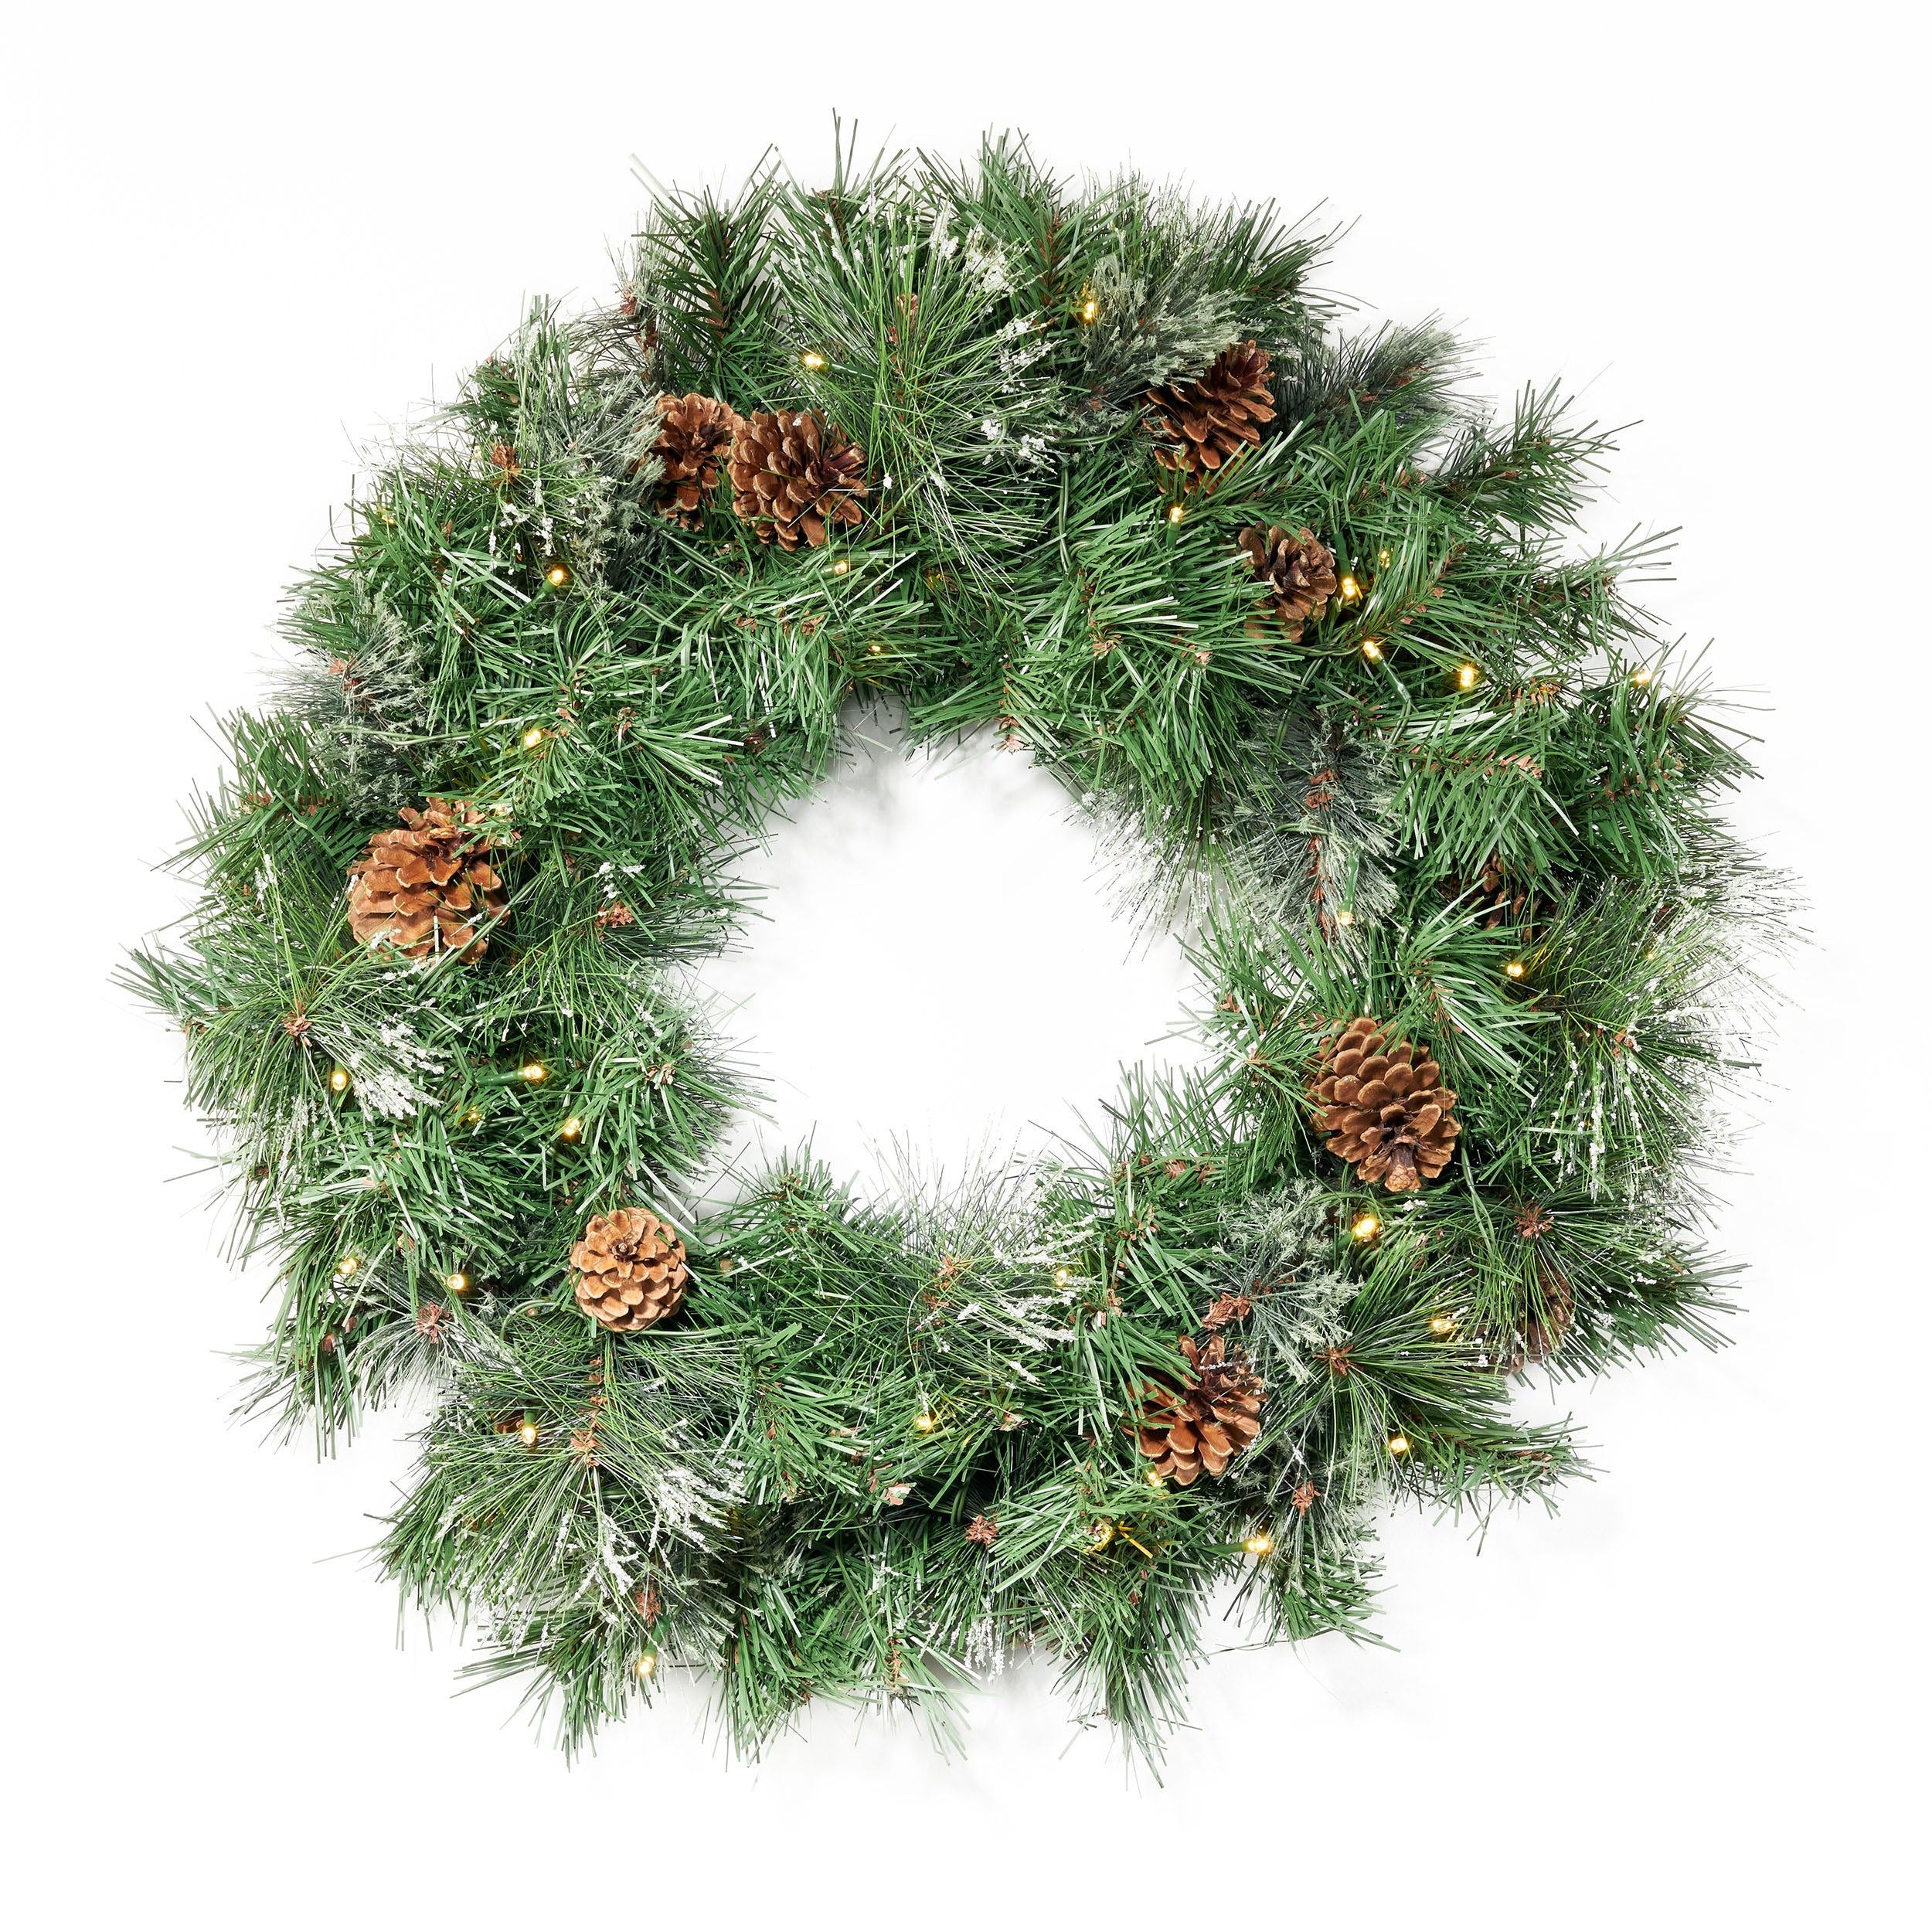 24 Cashmere Pine and Mixed Needles Warm White LED Artificial Christmas Wreath with Snowy Branches and Pinecones